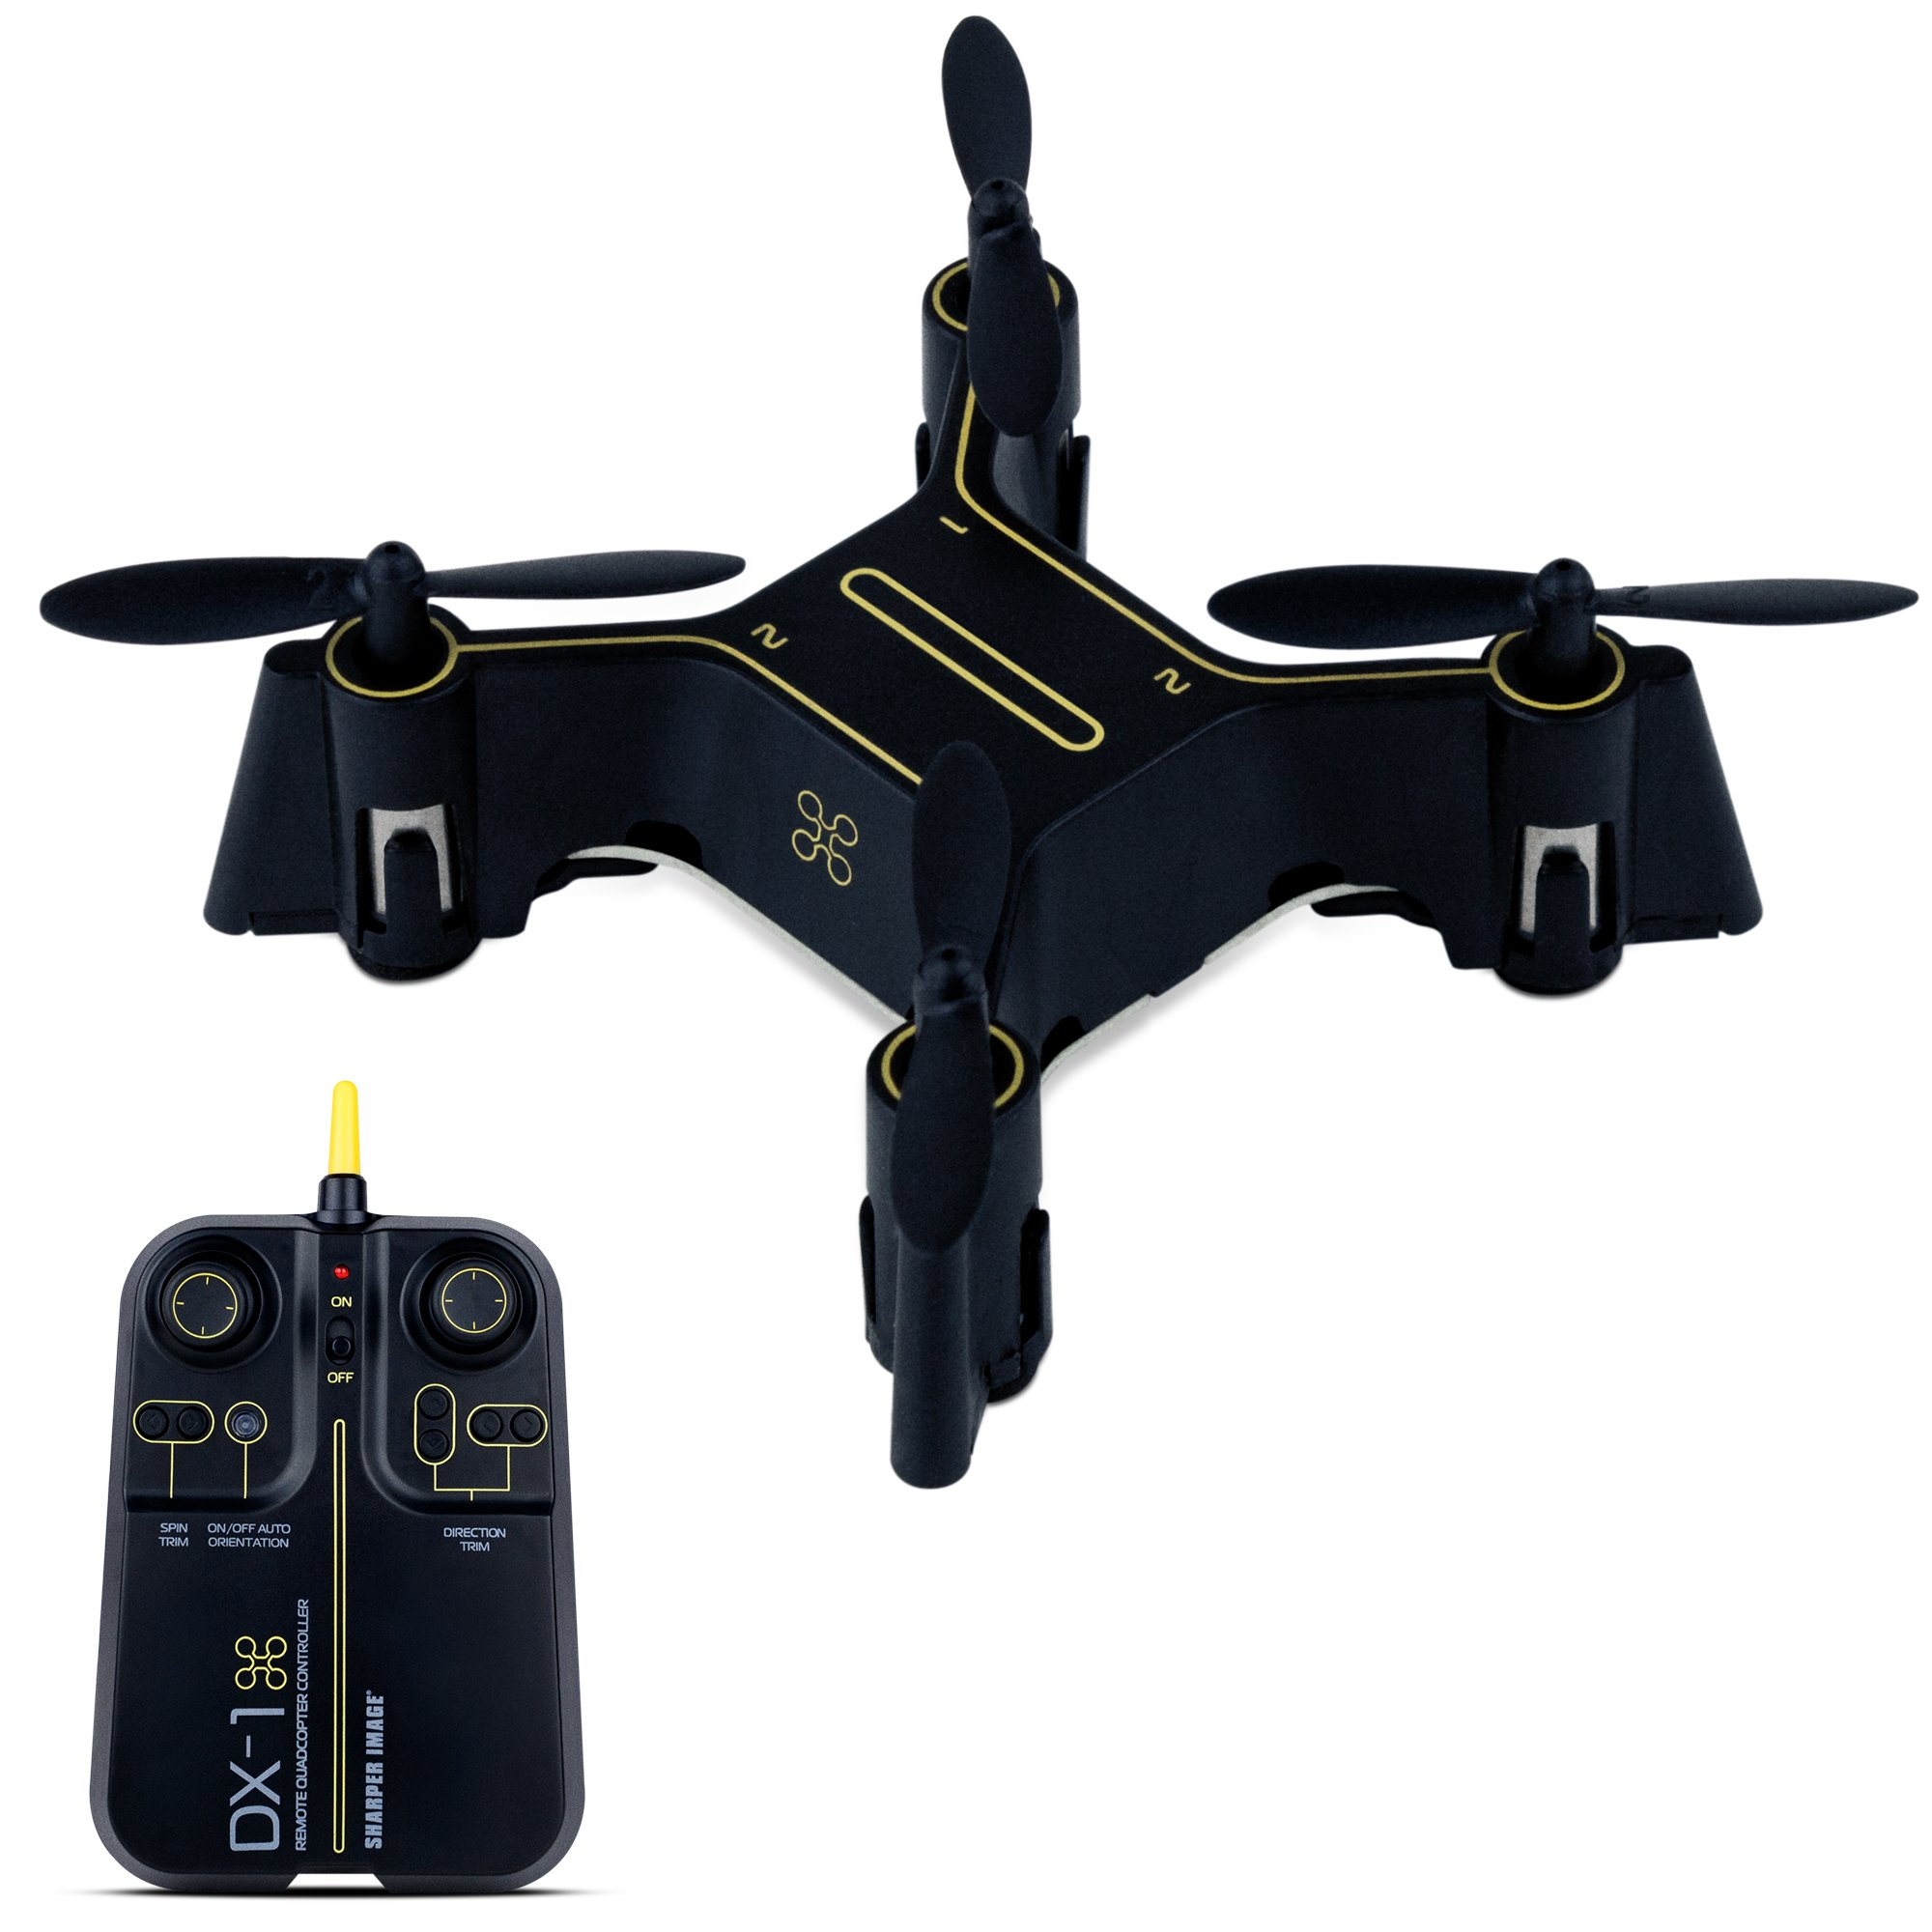 SHARPER IMAGE Micro RC Quadcopter Stunt Drone, 2.4GHz Transmitter, 6 Axis Gyroscope Technology, Rechargeable Battery, Great Choice for Drone Training (Black/Yellow)